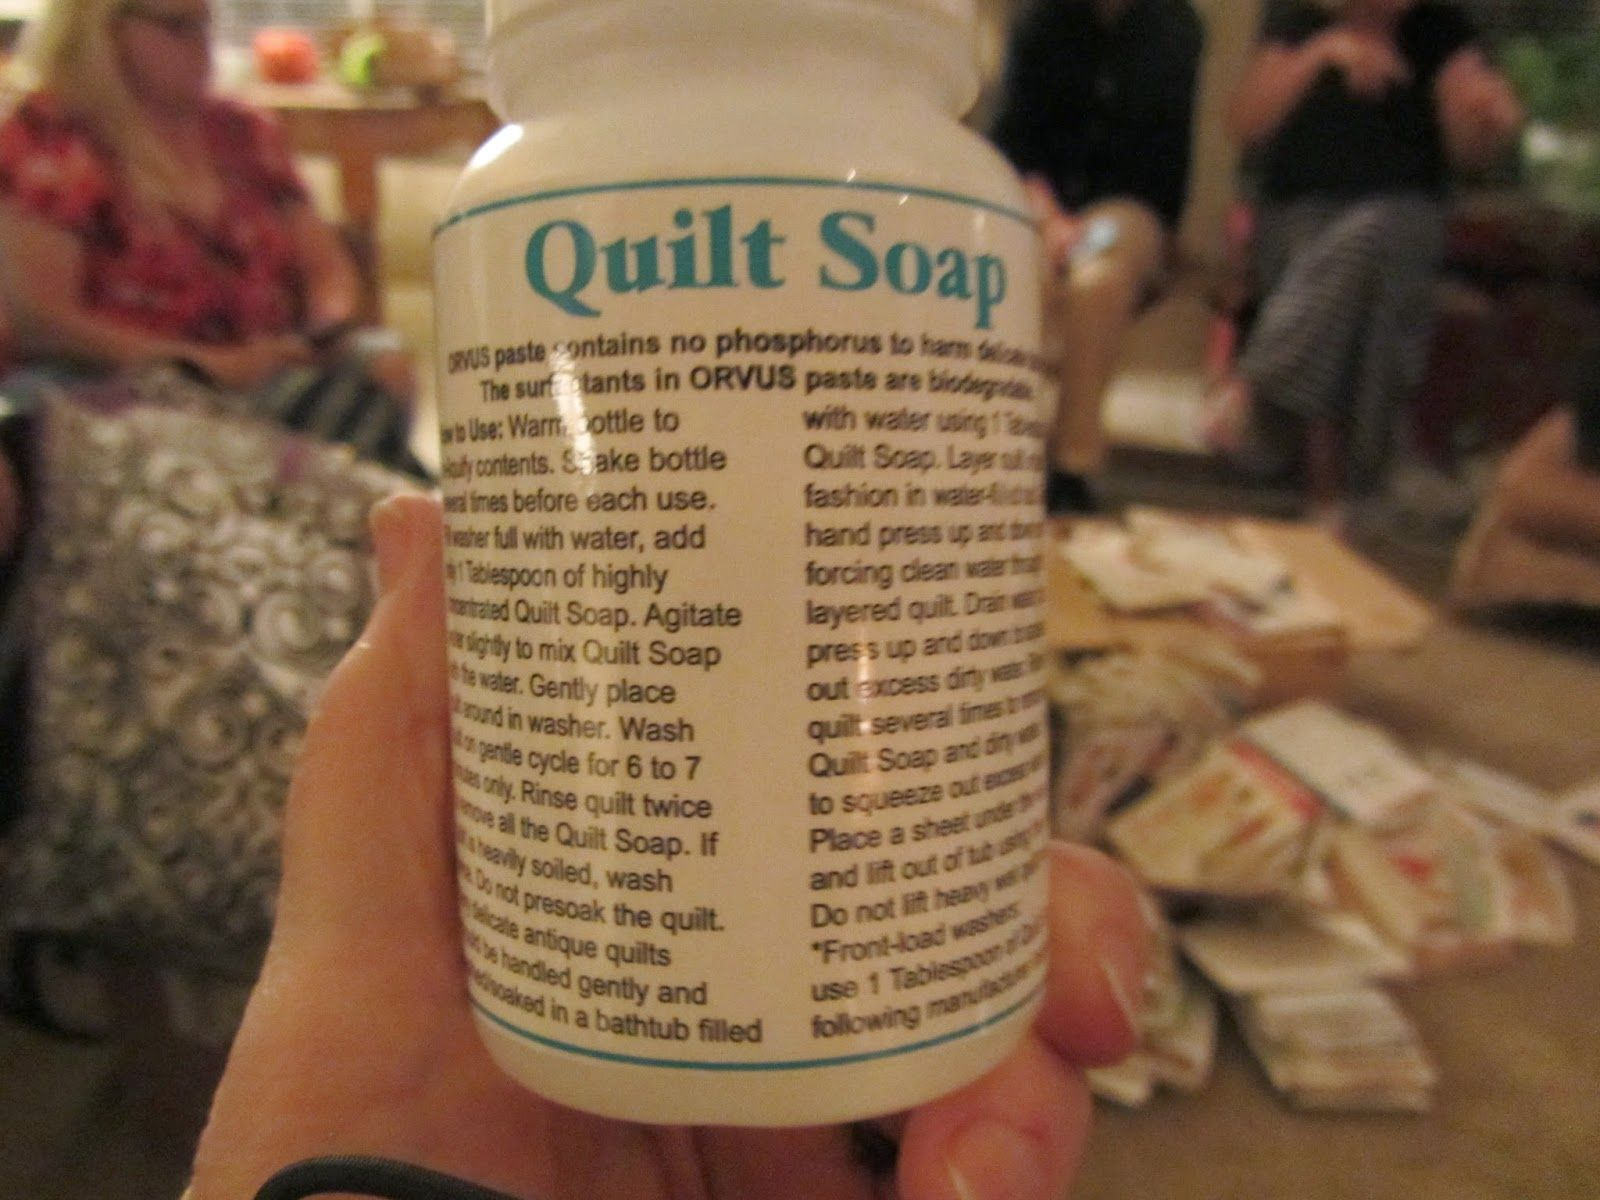 labels gorges category quilt washing freshening orvus soap